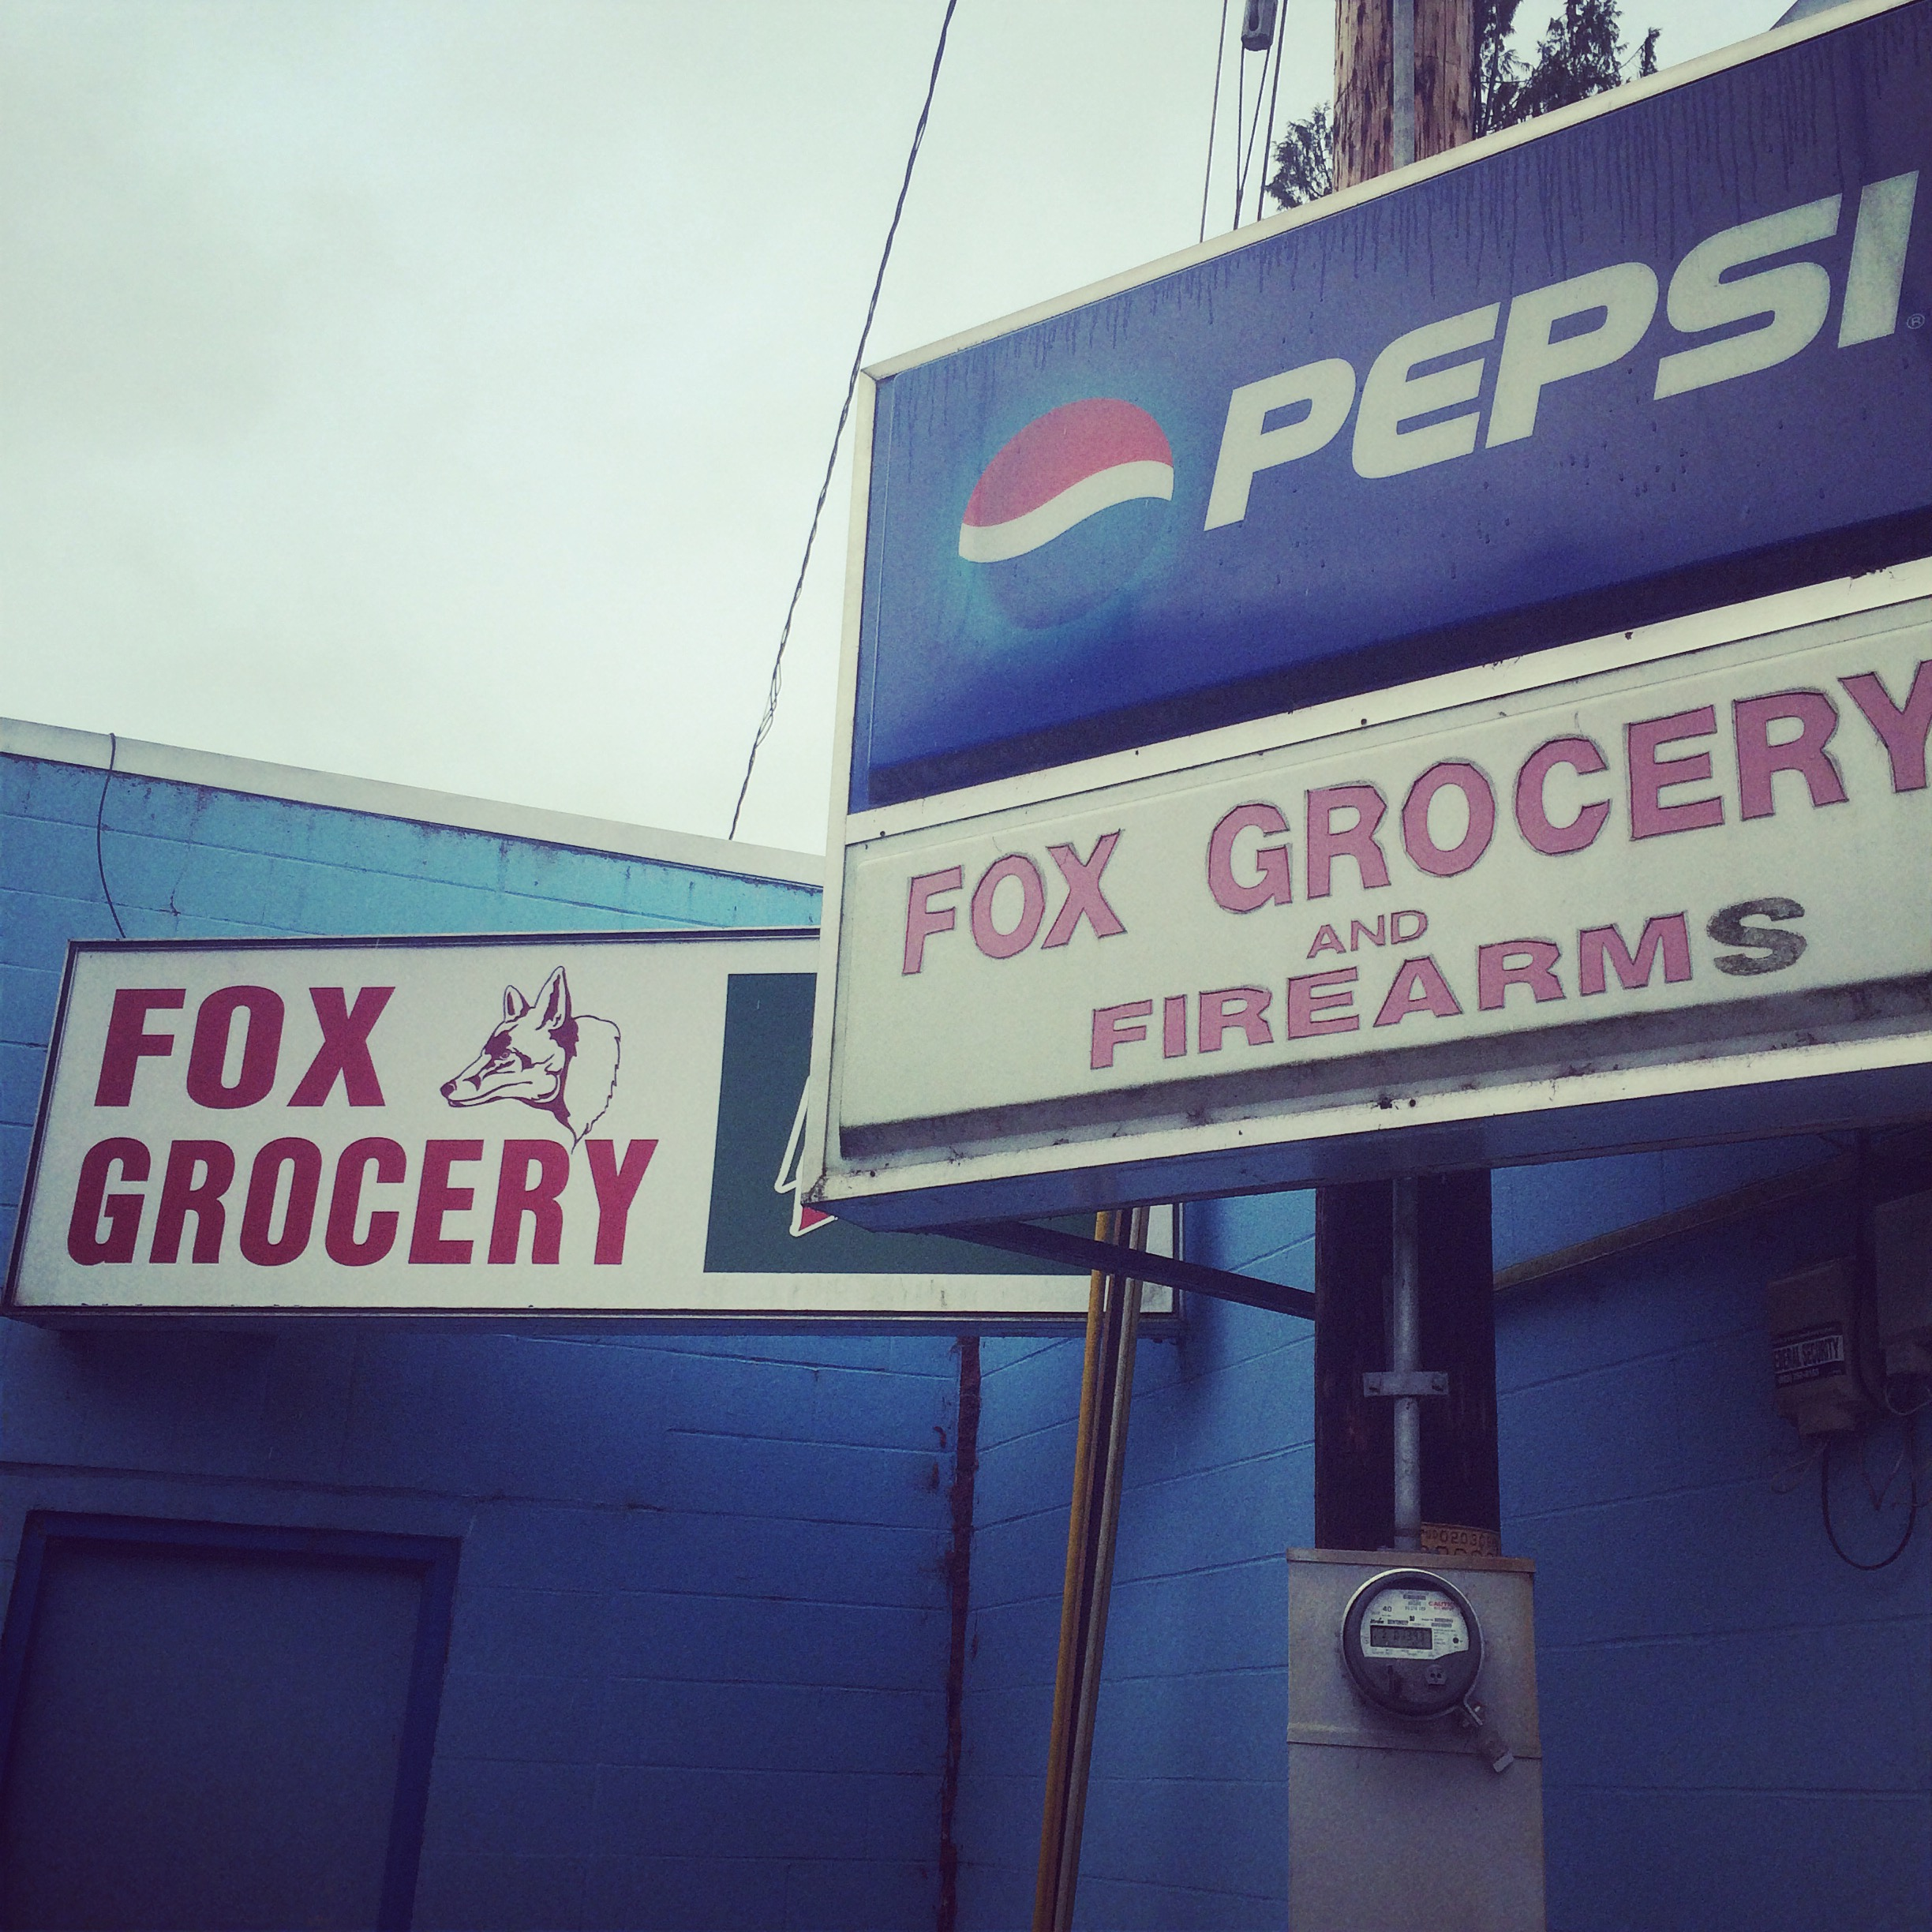 Nothing is more inviting than a grocery/firearm store in the middle of nowhere! ;)